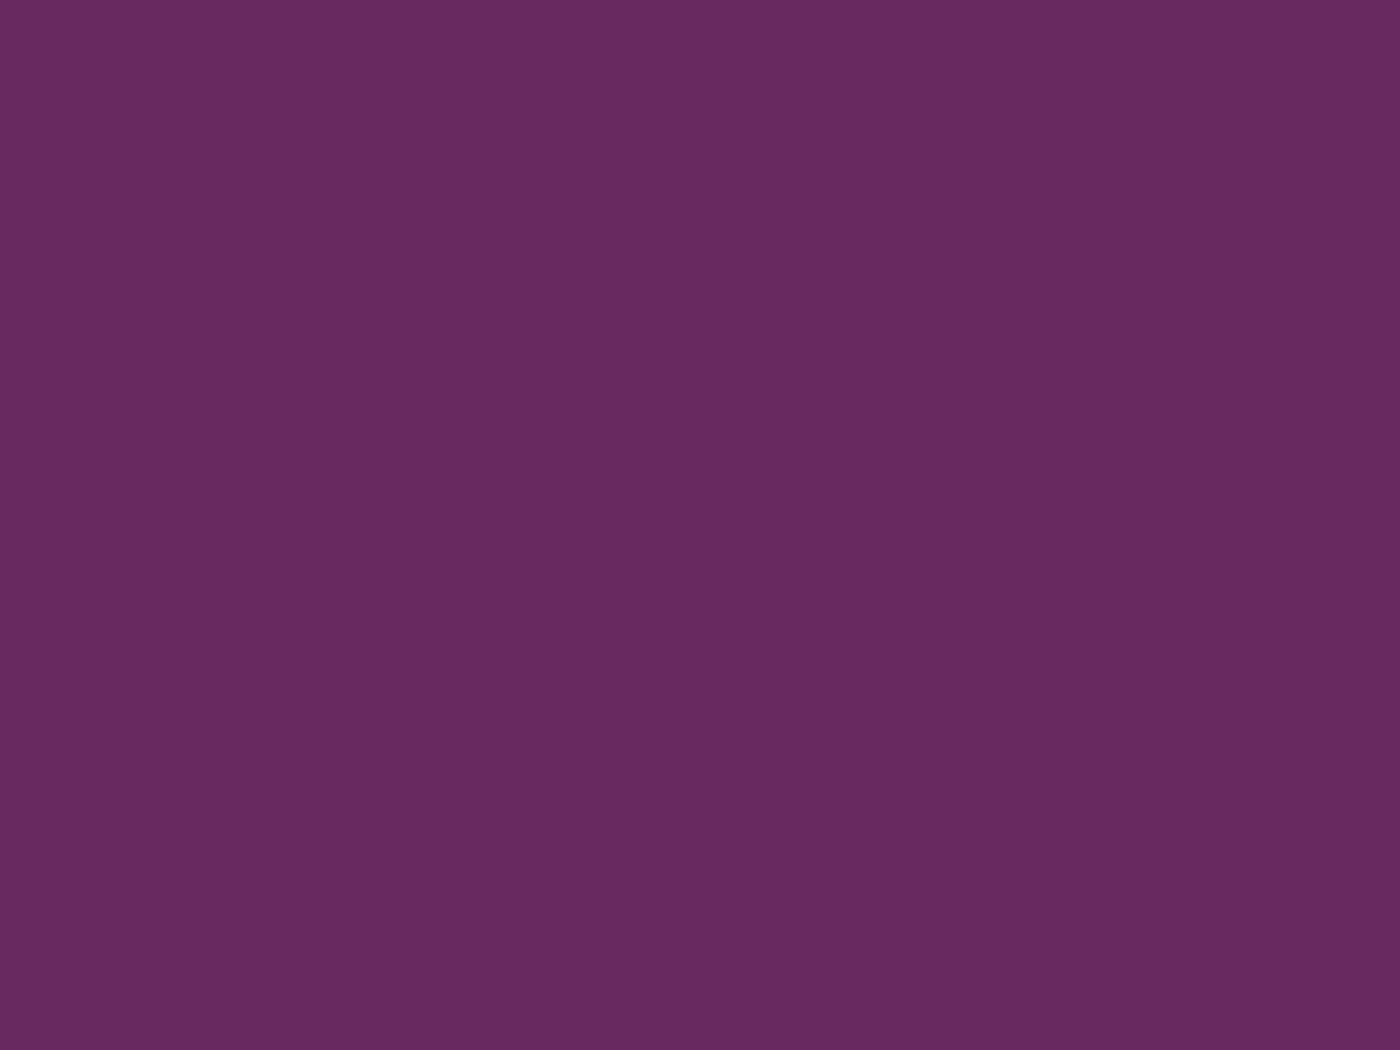 1400x1050 Palatinate Purple Solid Color Background